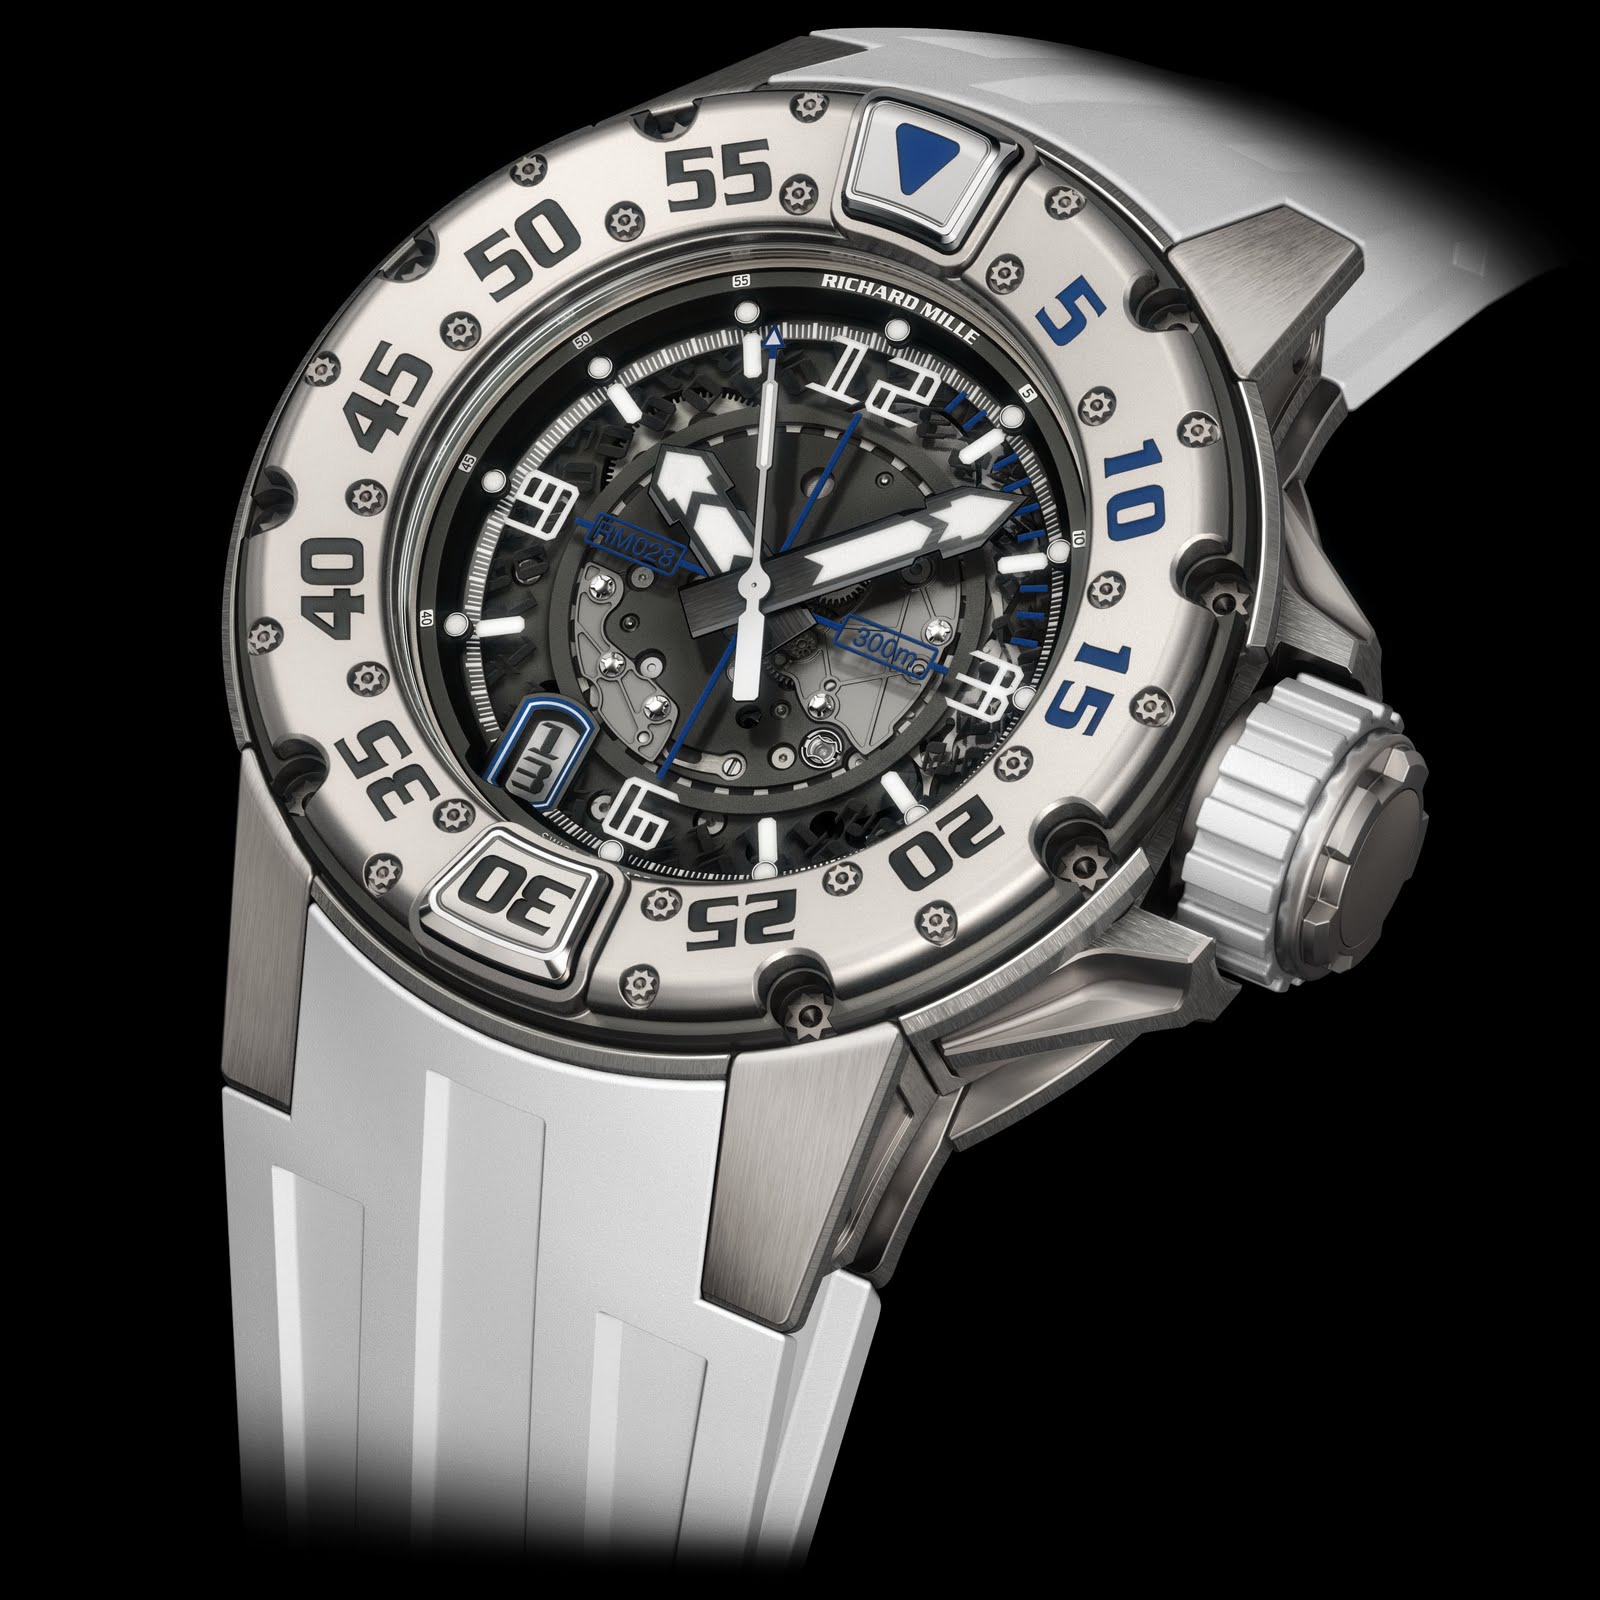 Replica Richard Mille RM 028 Diver Saint Tropez Titanium Watch